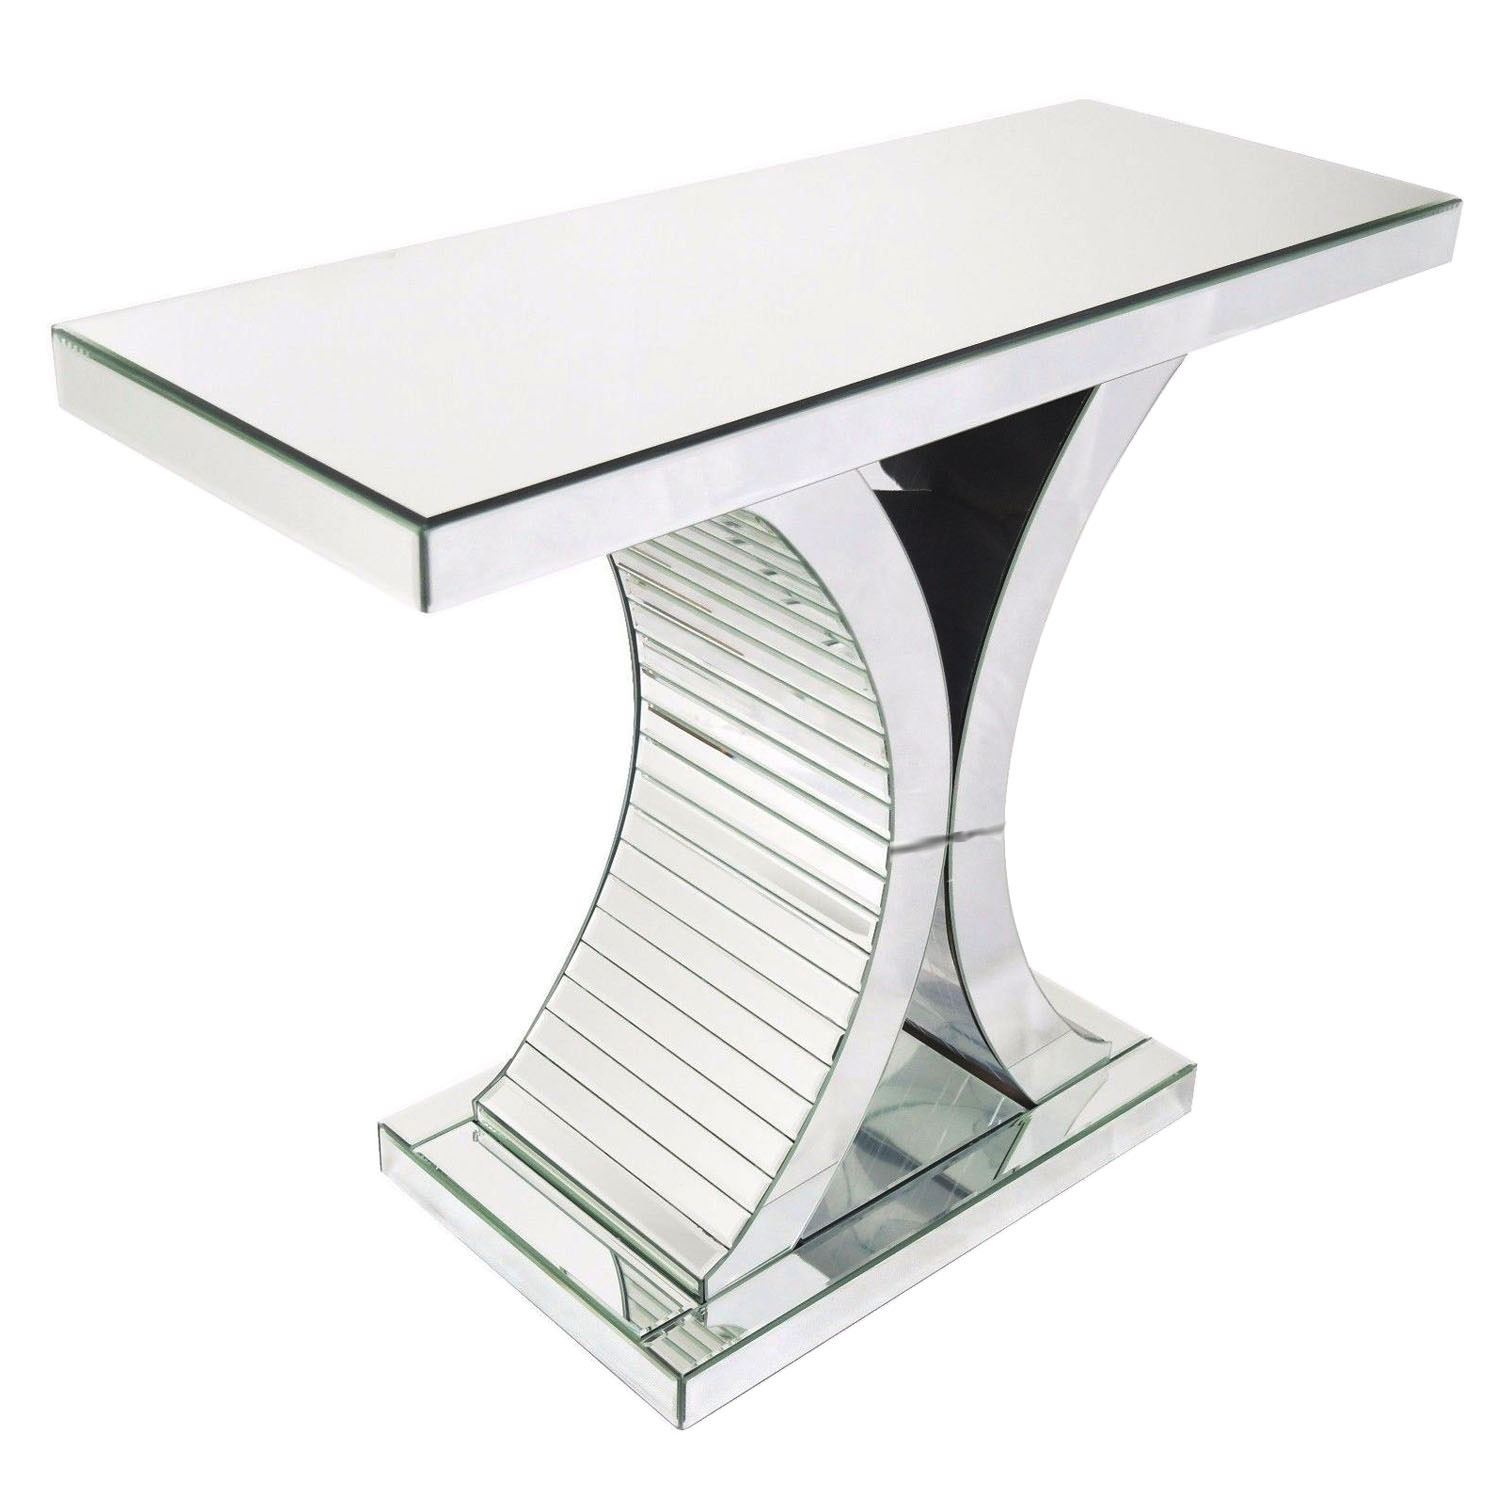 Details about mirrored glass x shape console table hallway desk side table living room decor